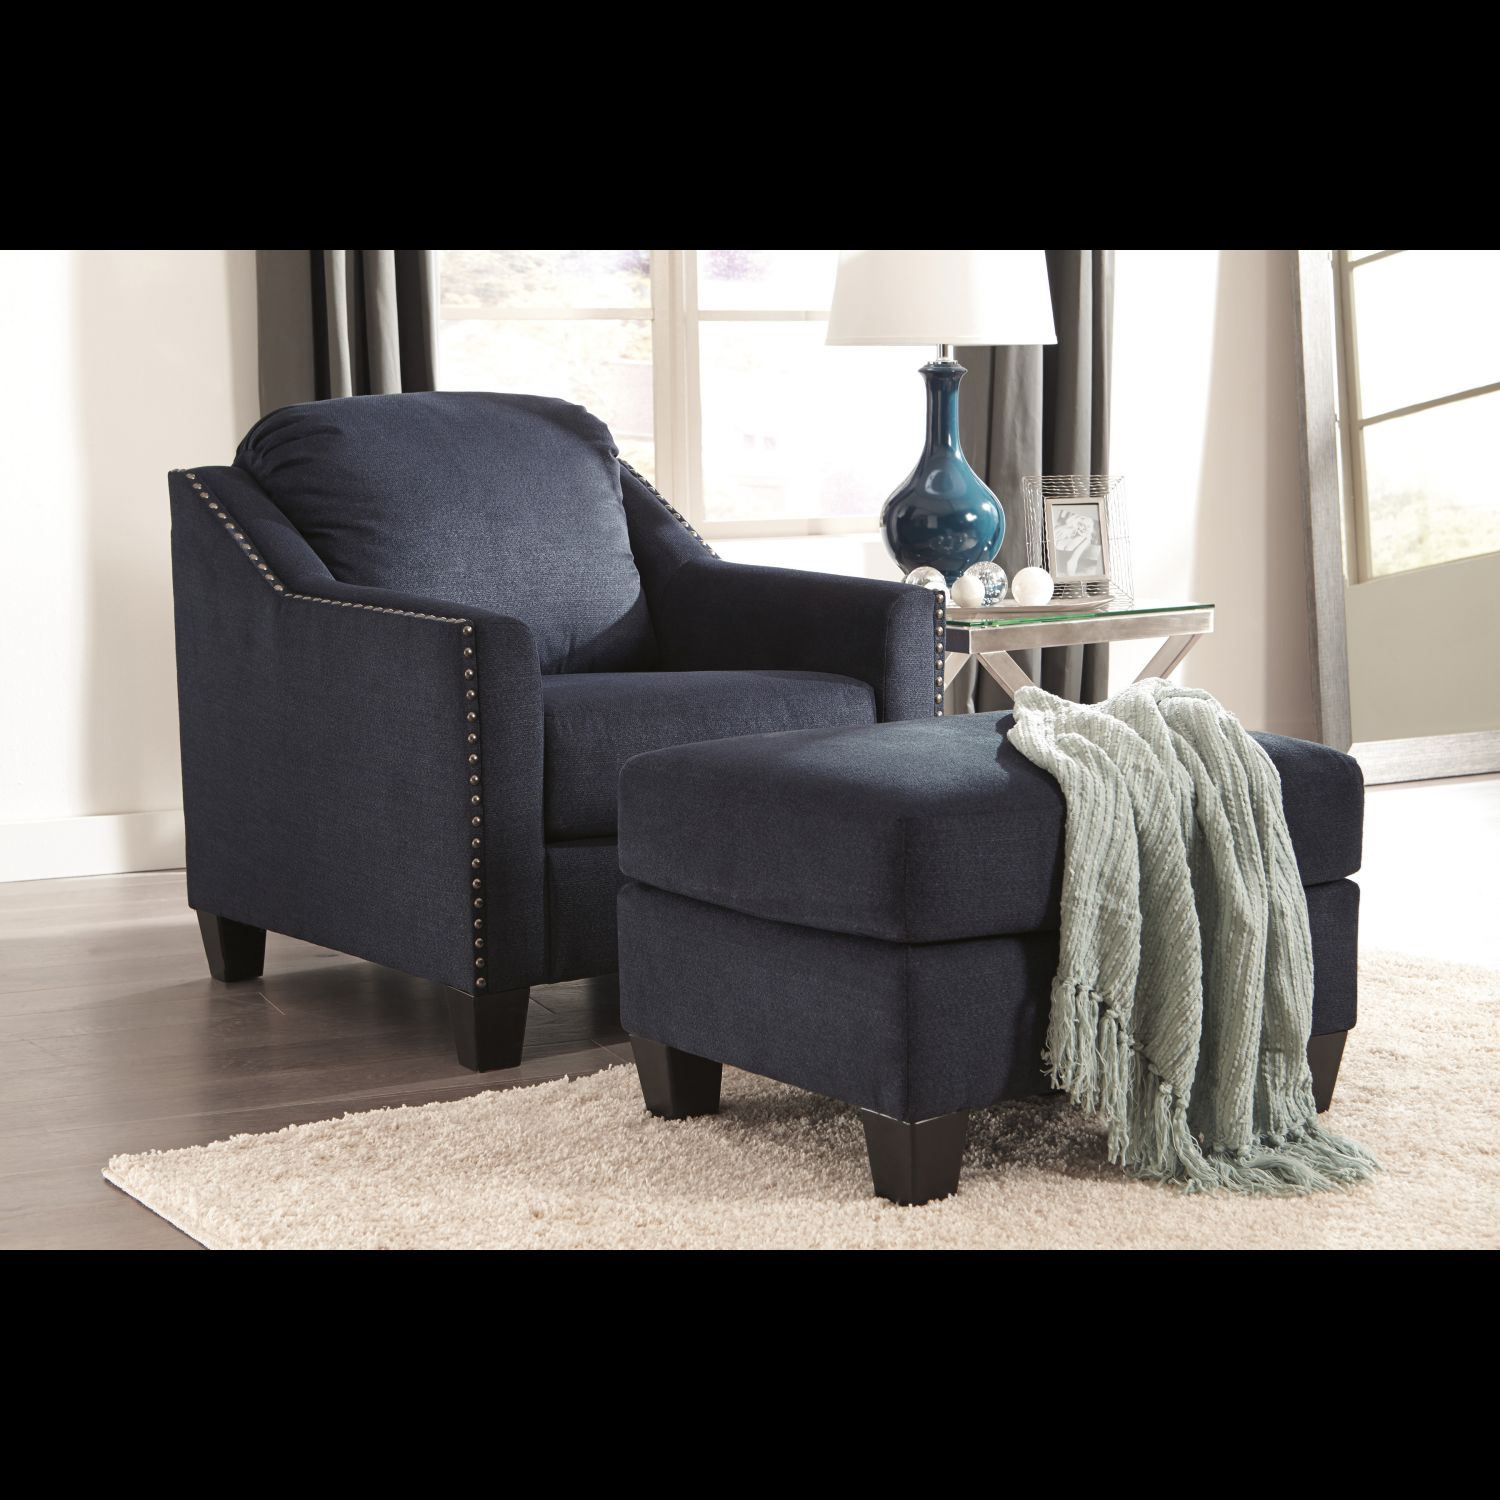 Nearest Ashley Furniture Store: Creeal Heights Ink Chair